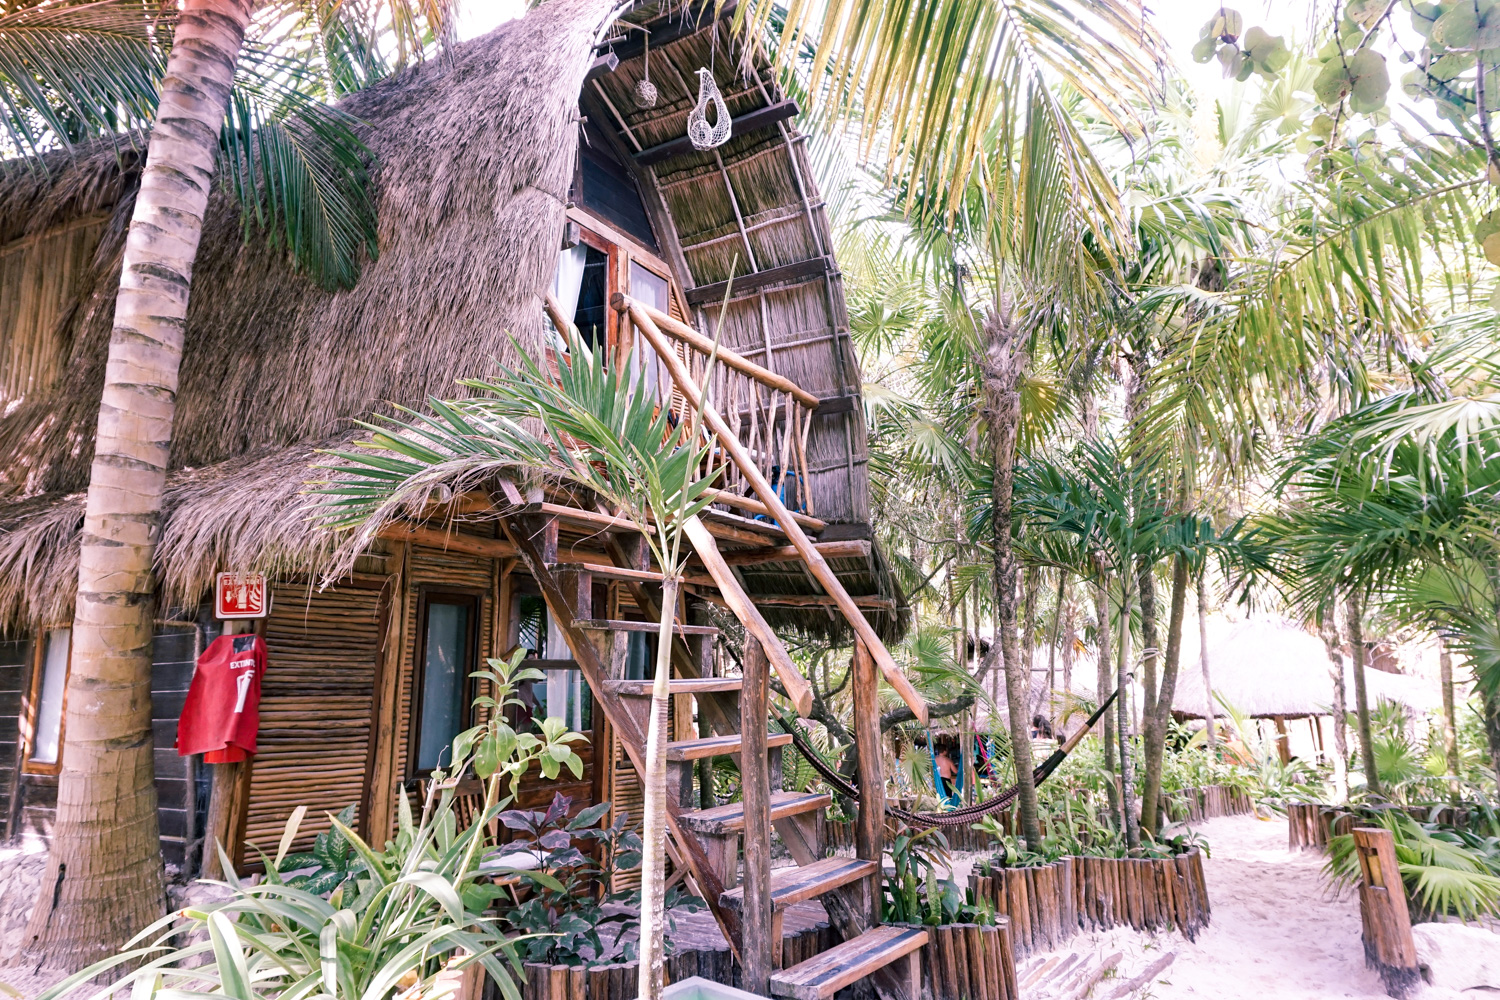 cabana in Tulum, Mexico